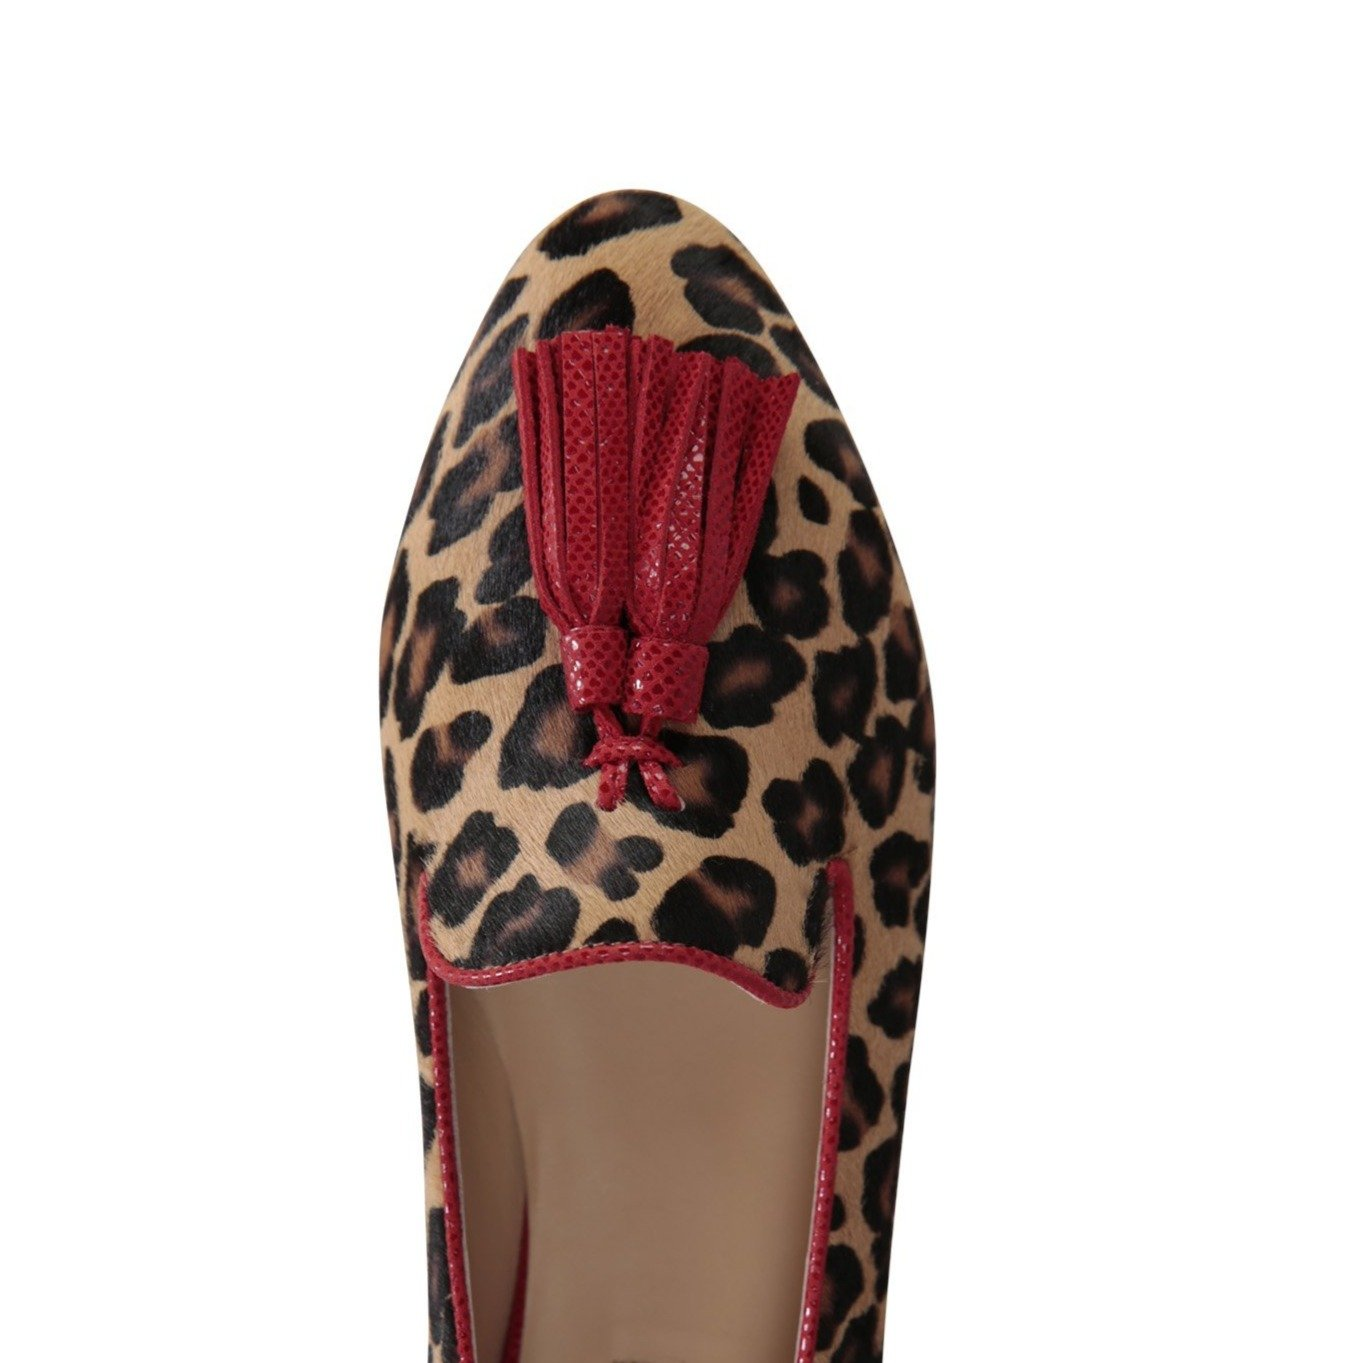 PARMA - Calf Hair Congo + Karung Rosso, VIAJIYU - Women's Hand Made Sustainable Luxury Shoes. Made in Italy. Made to Order.